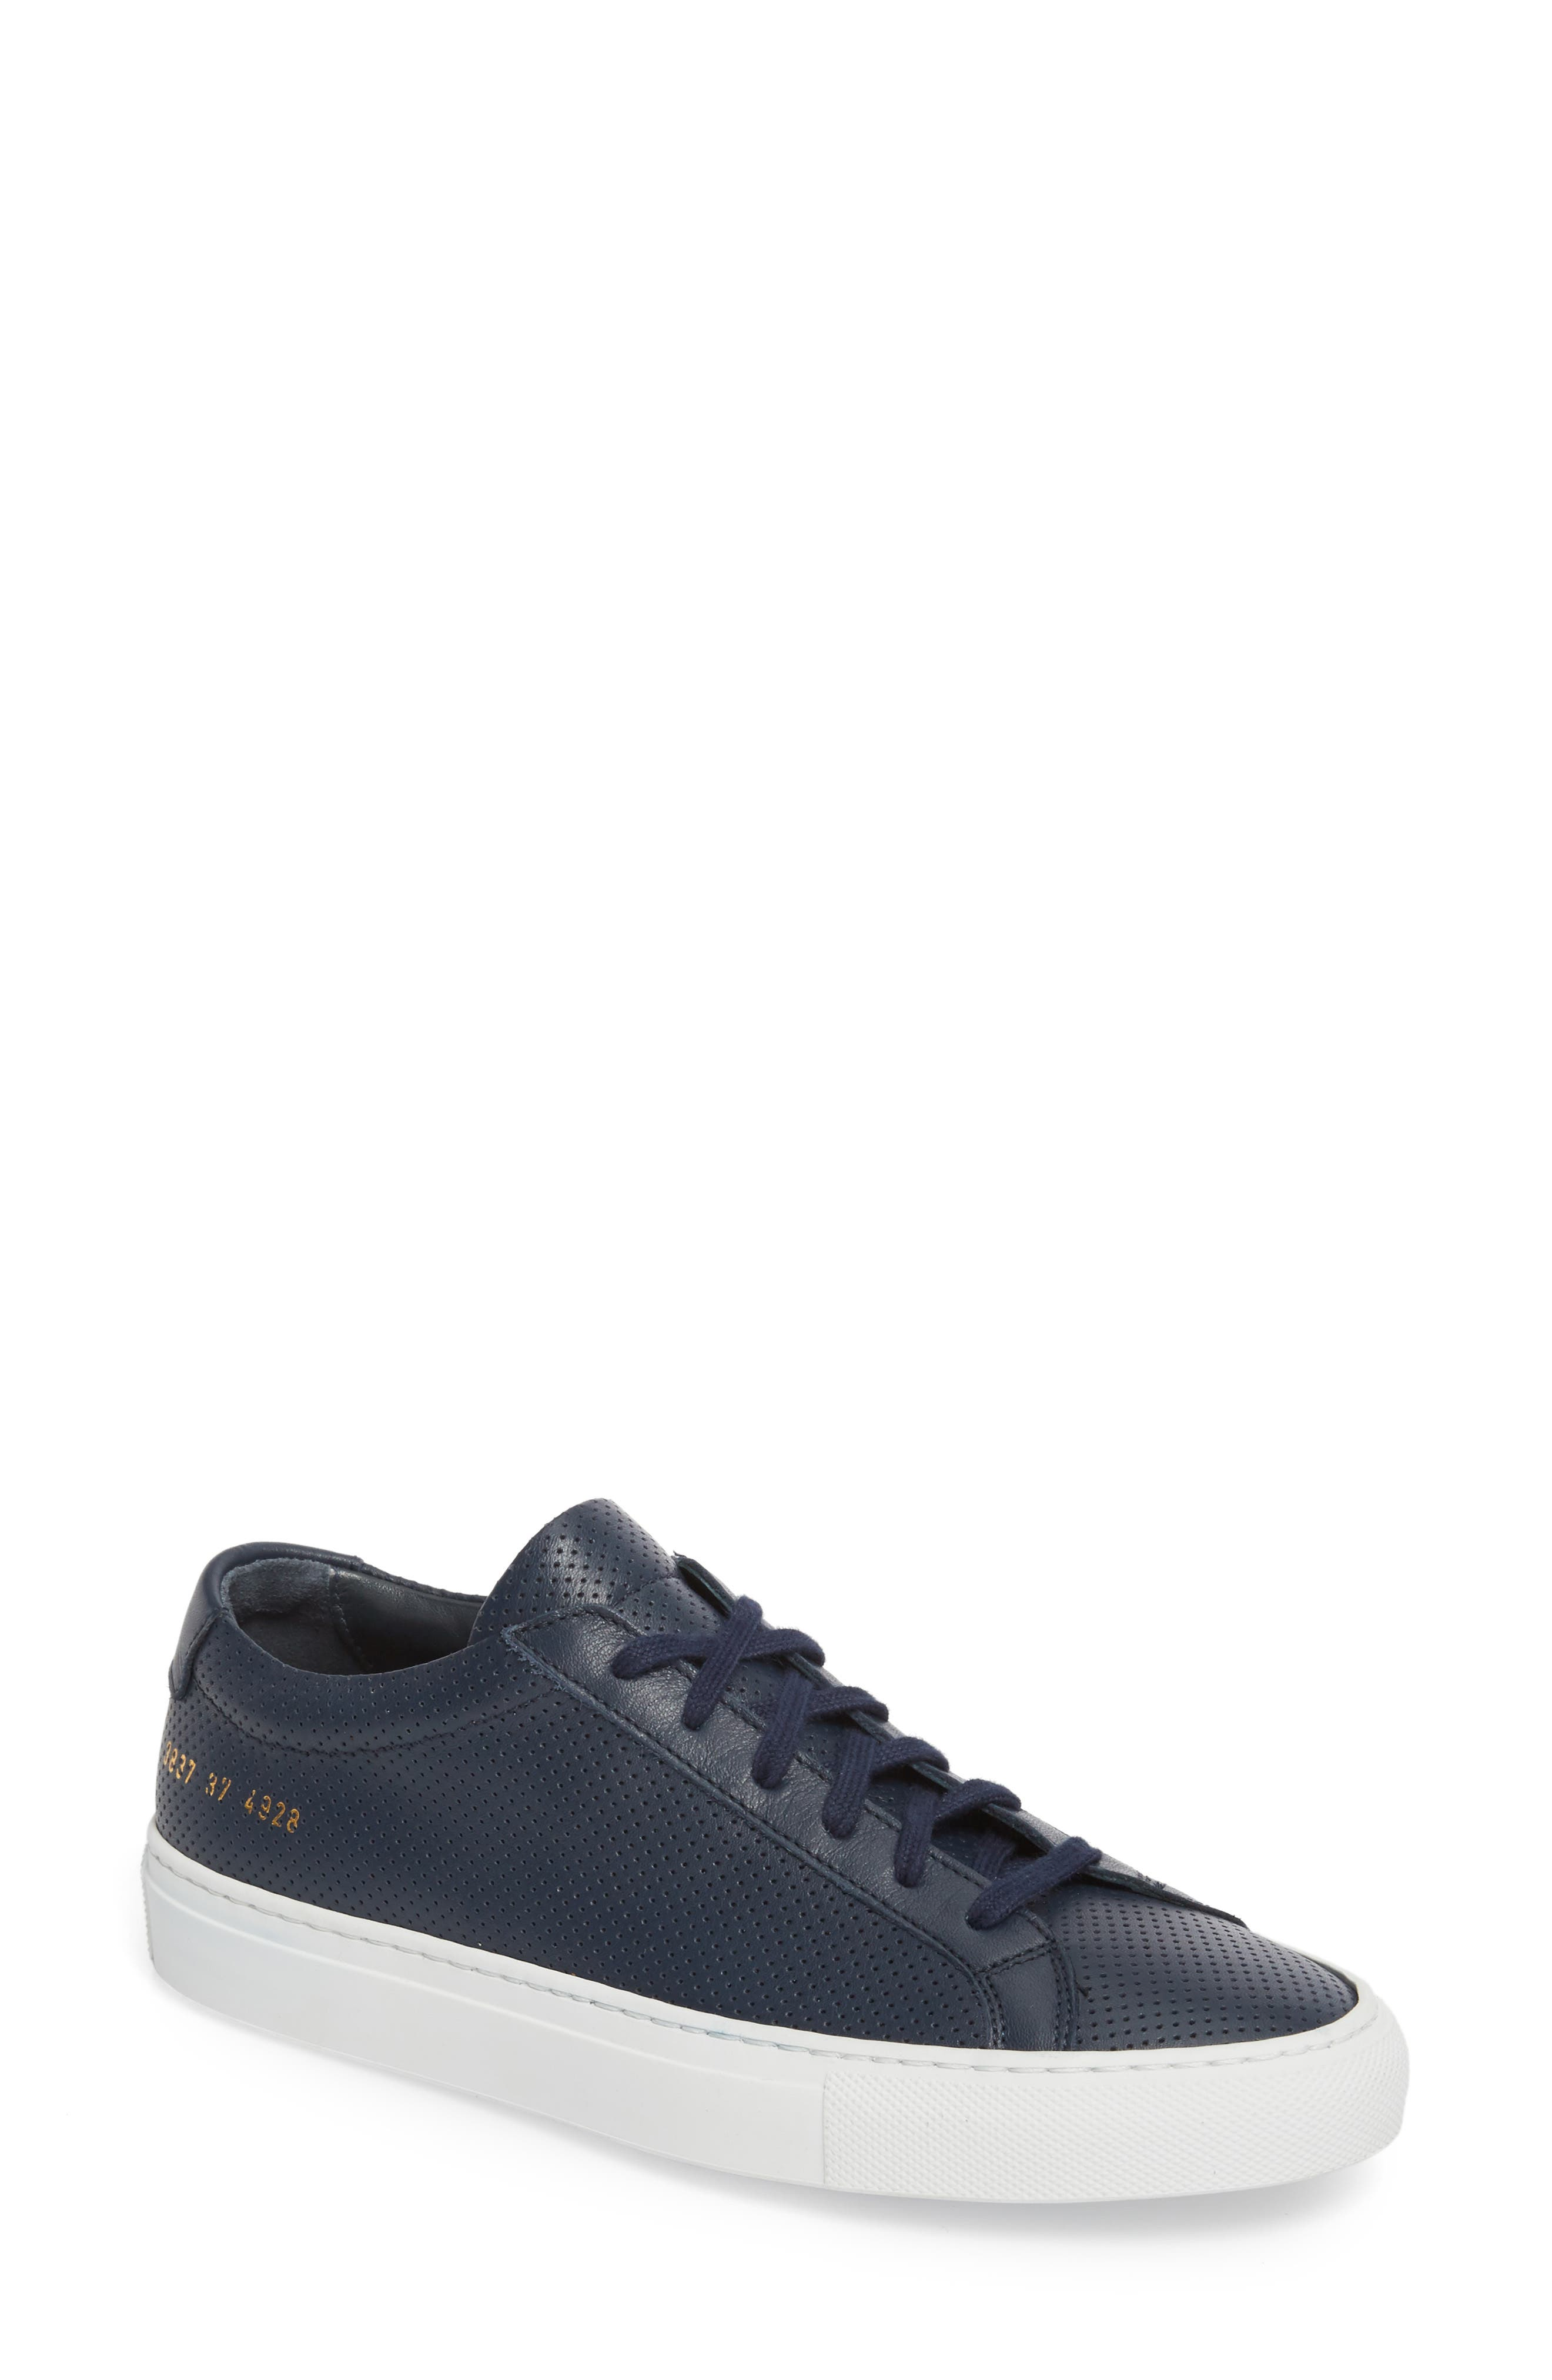 Common Projects Original Achilles Perforated Low Sneaker (Women)